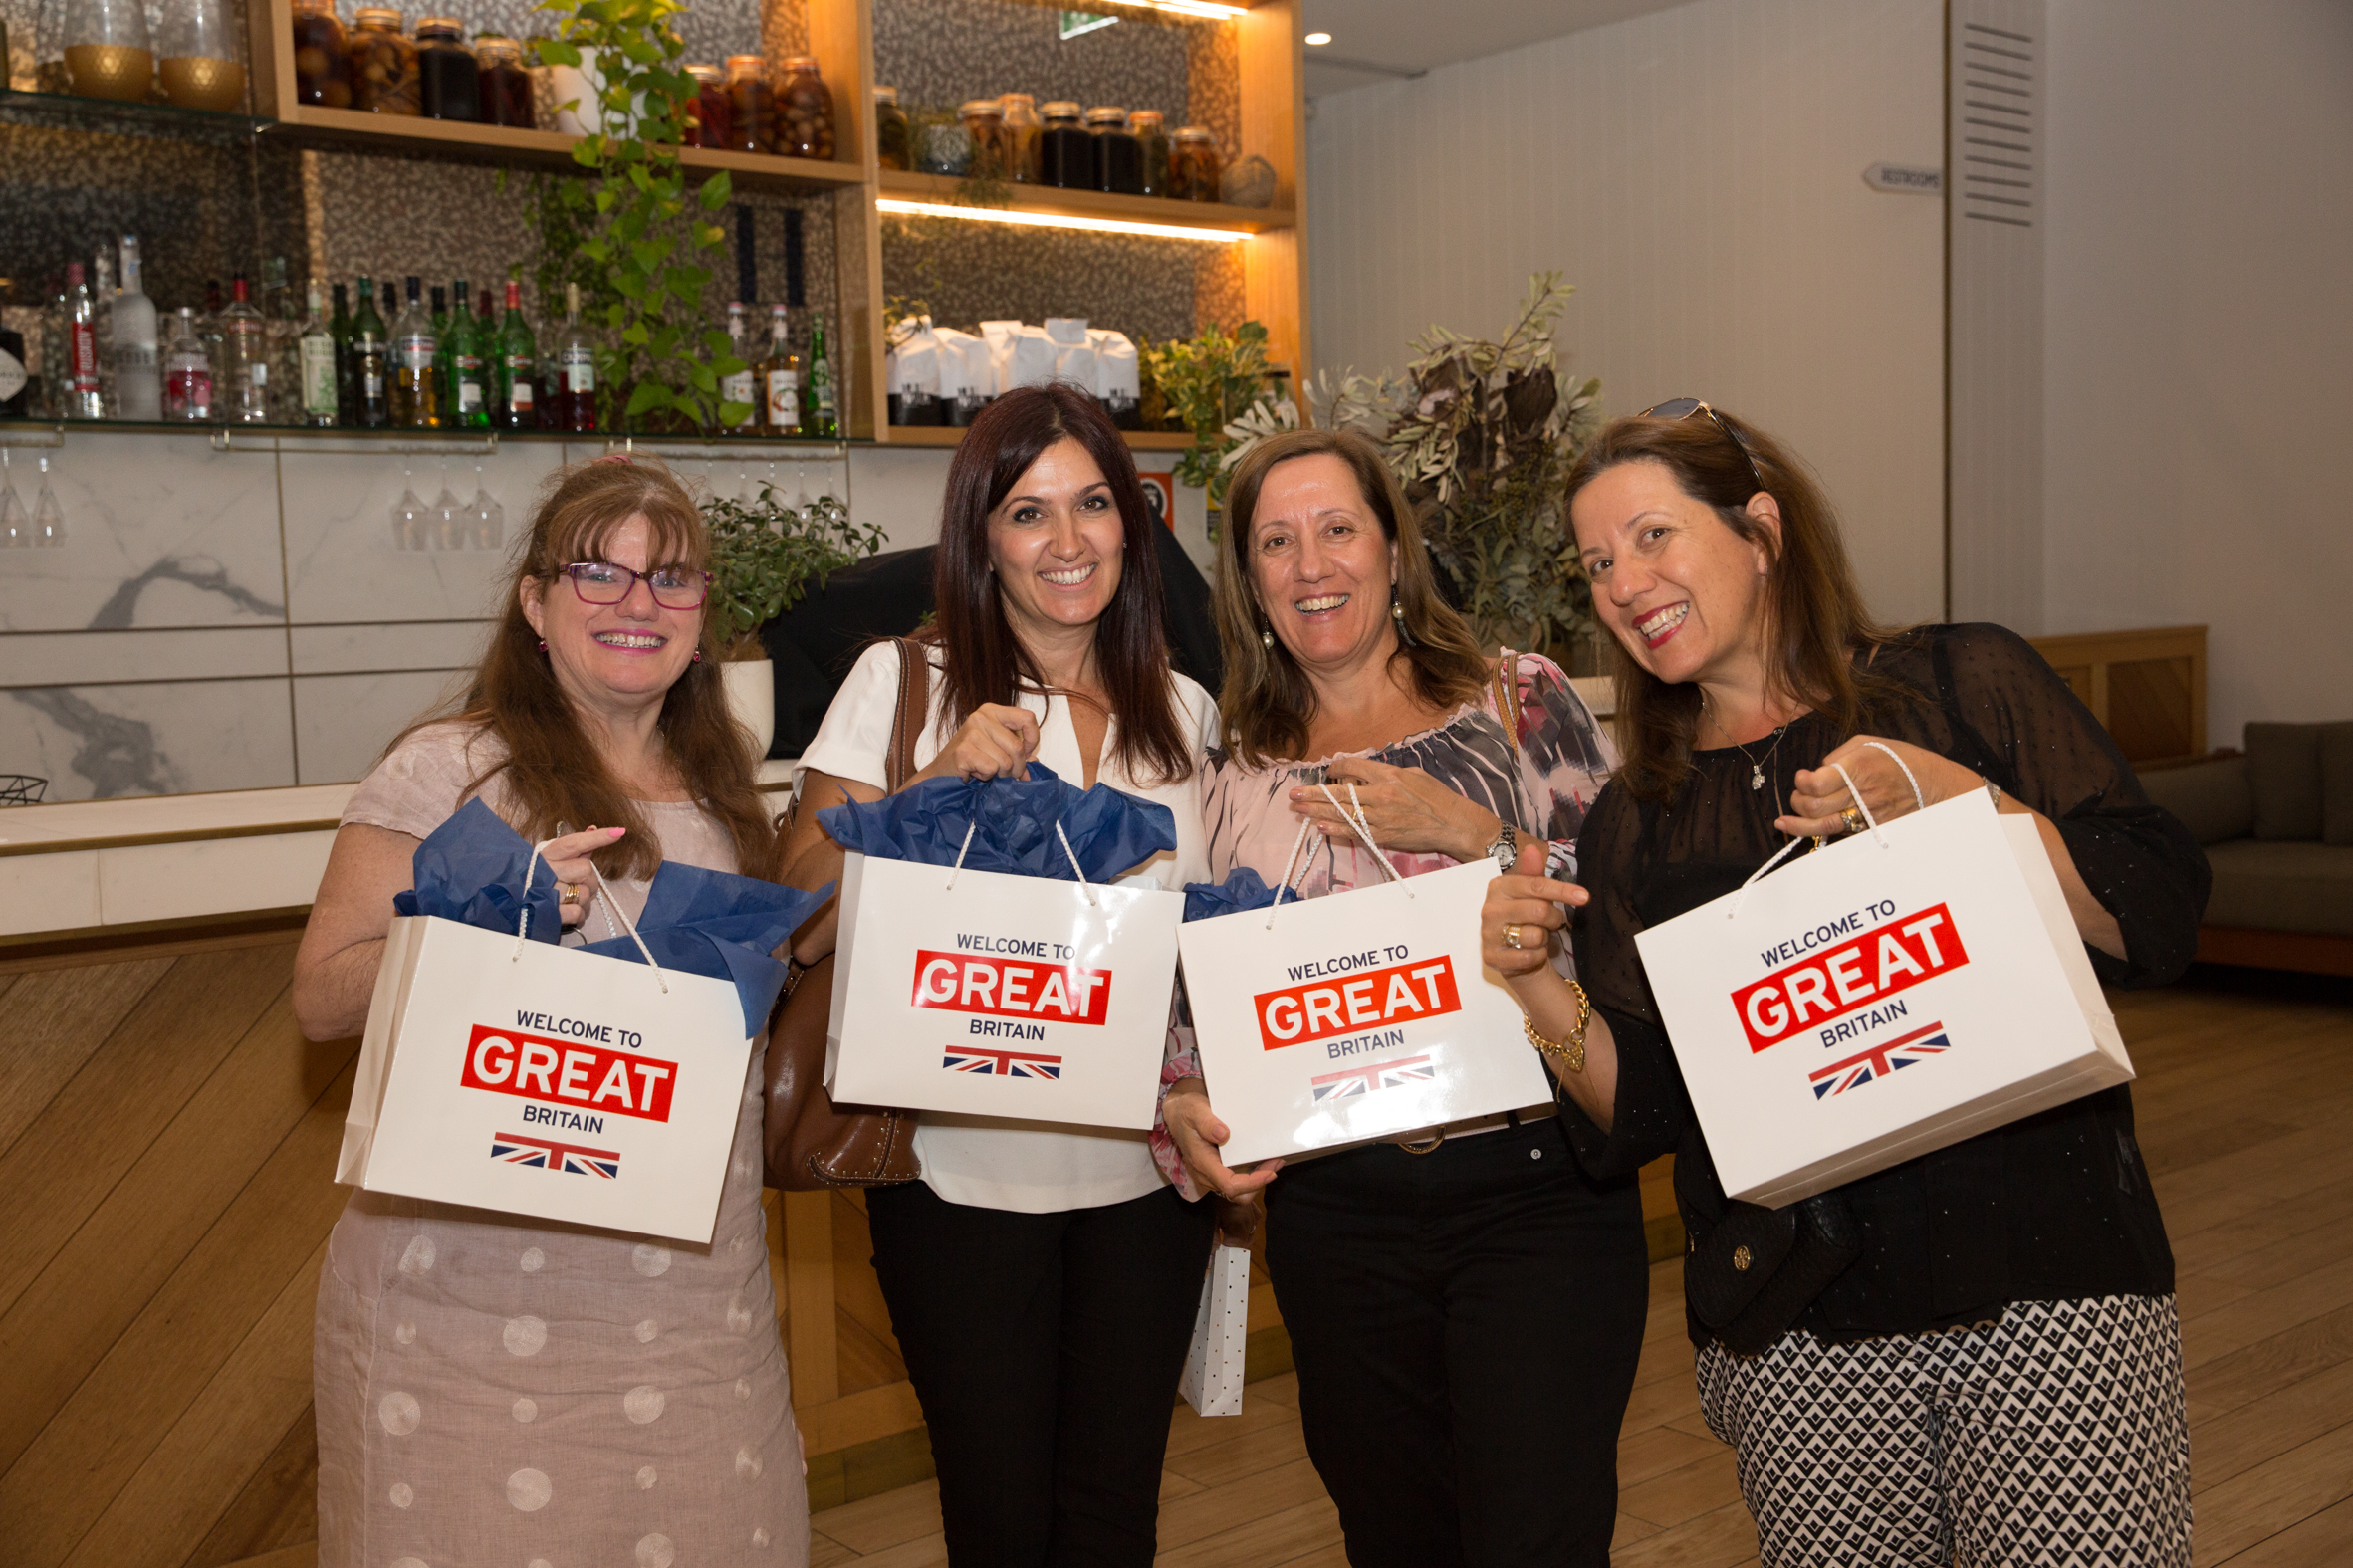 Excite Hosts Exclusive Great Britain Event photo